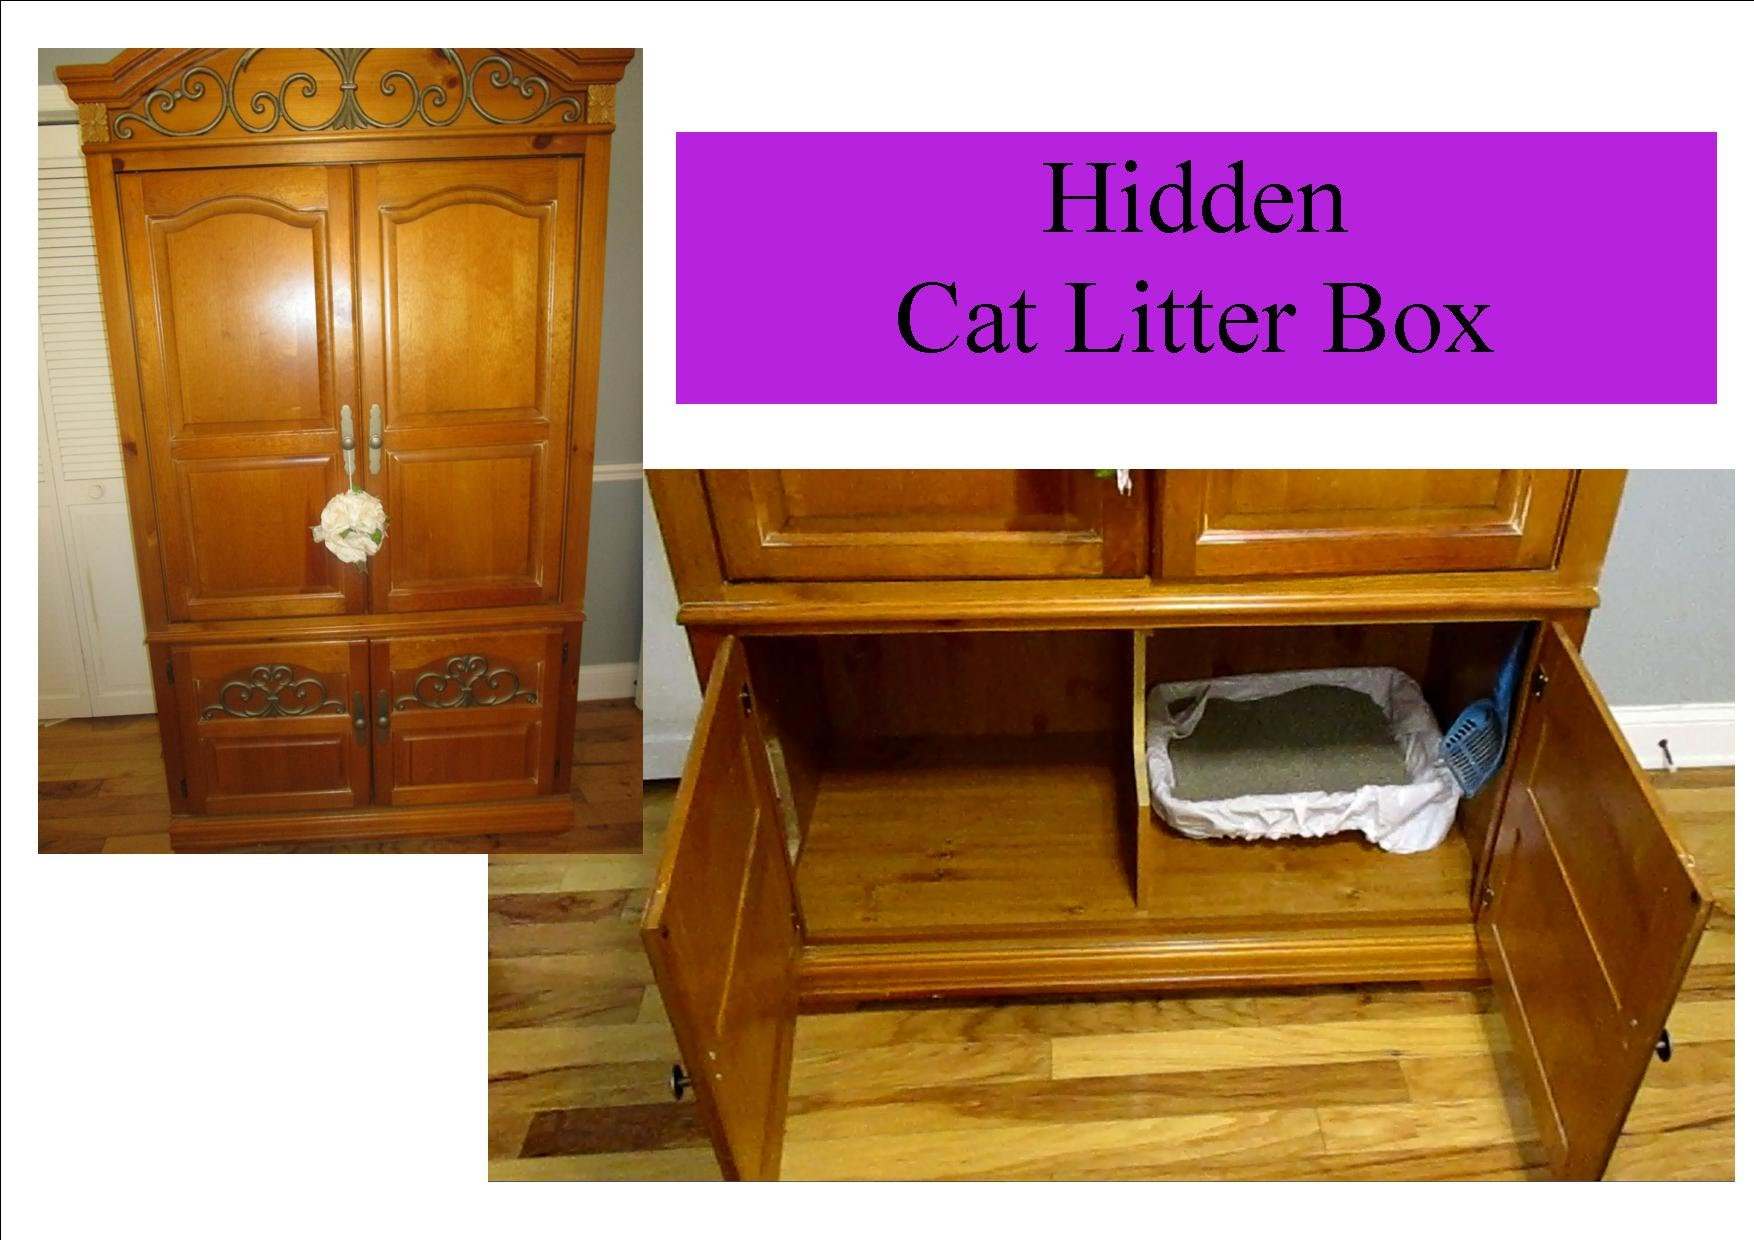 Designer Cat Litter Box | Fancy Litter Boxes | Hidden Cat Litter Box